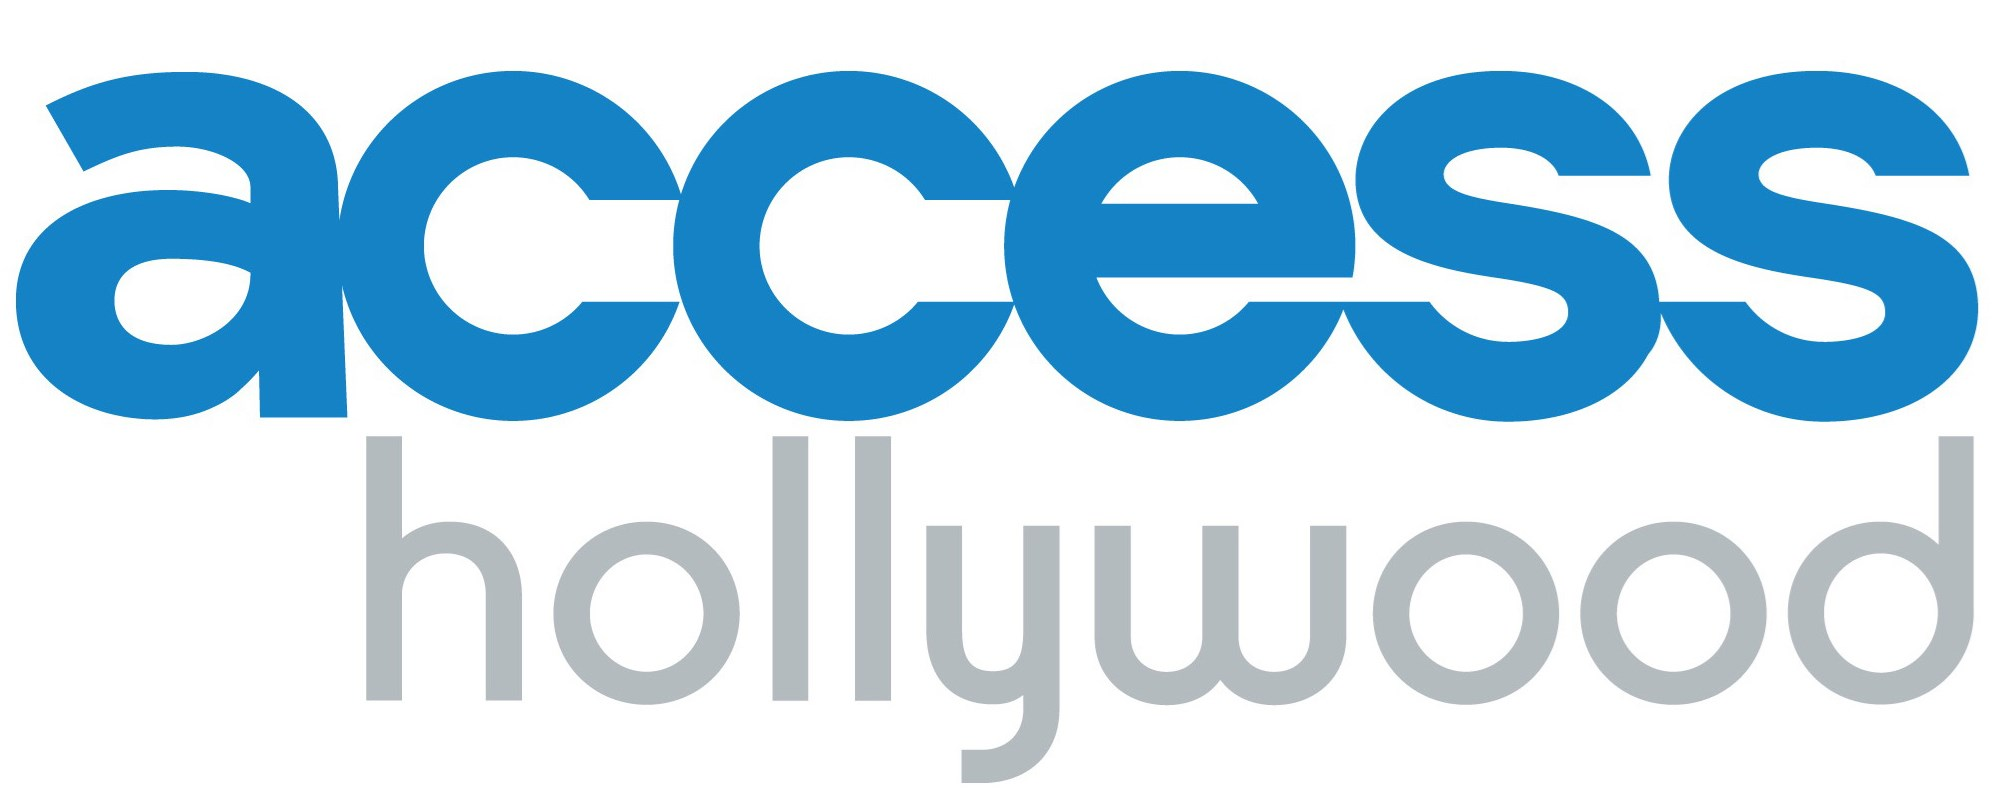 In what year did the TV series Access Hollywood begin?.